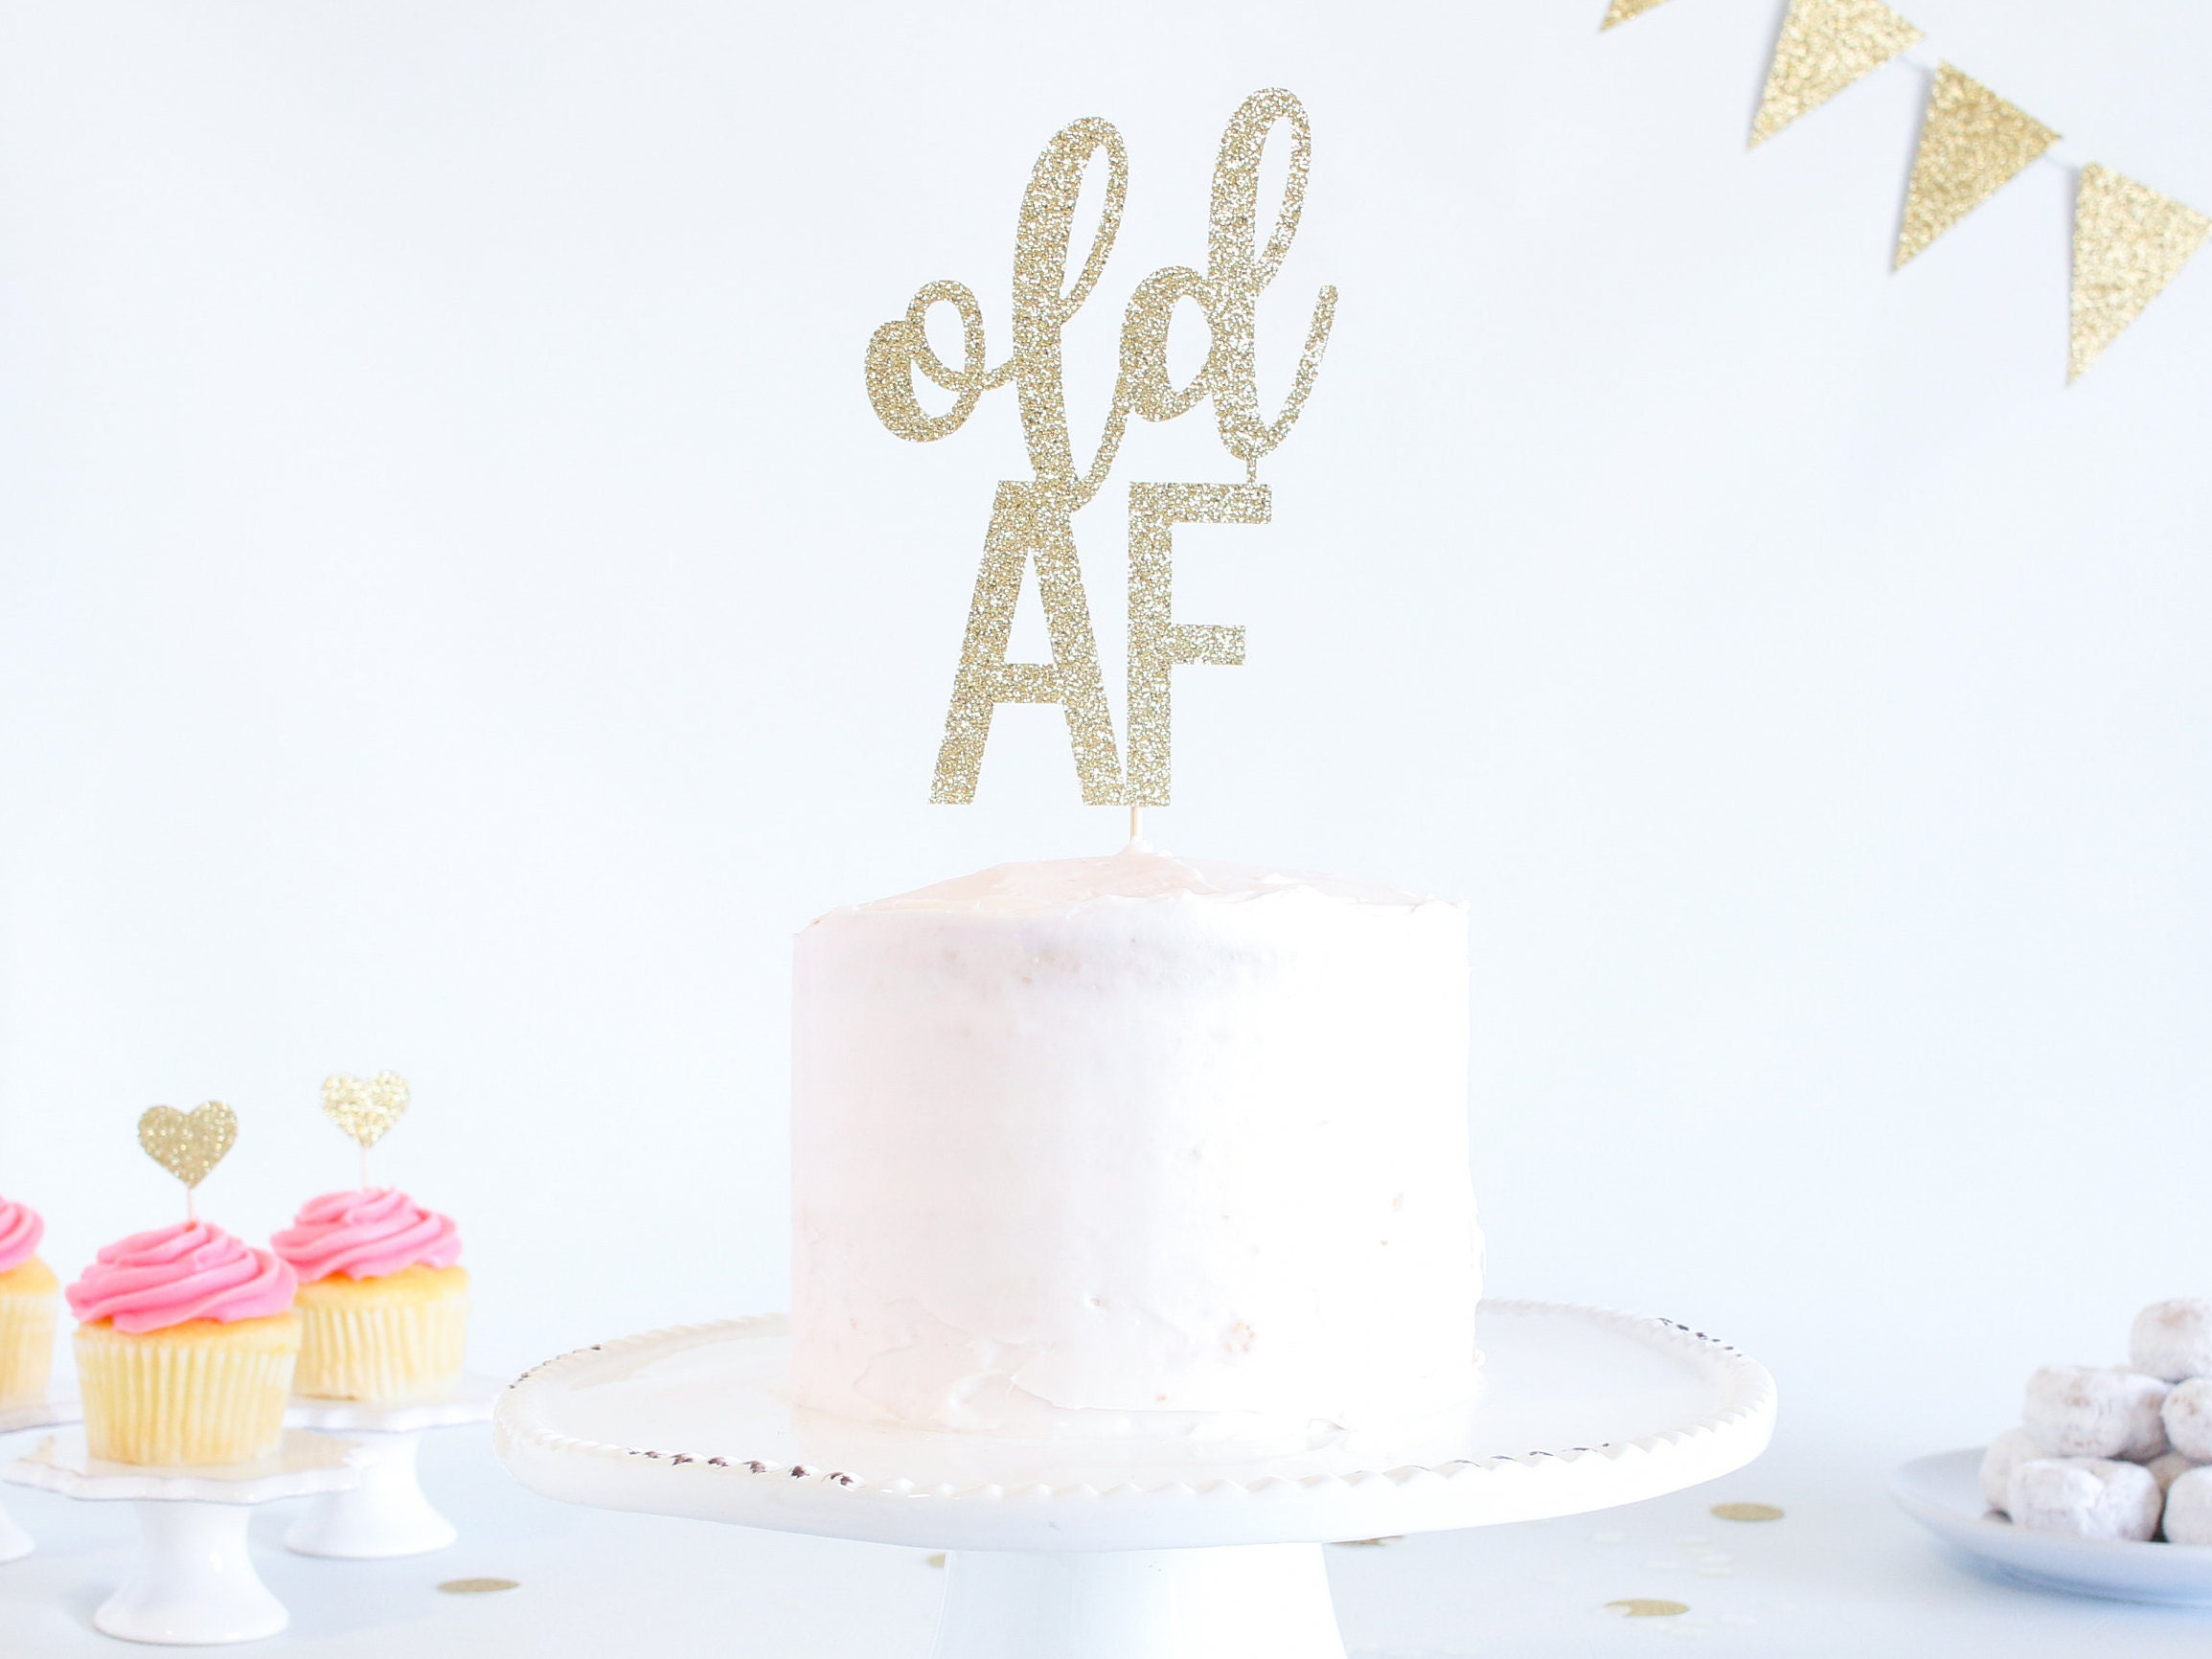 Awe Inspiring Old Af Cake Topper Glitter Birthday Over The Hill Birthday Cake Personalised Birthday Cards Beptaeletsinfo